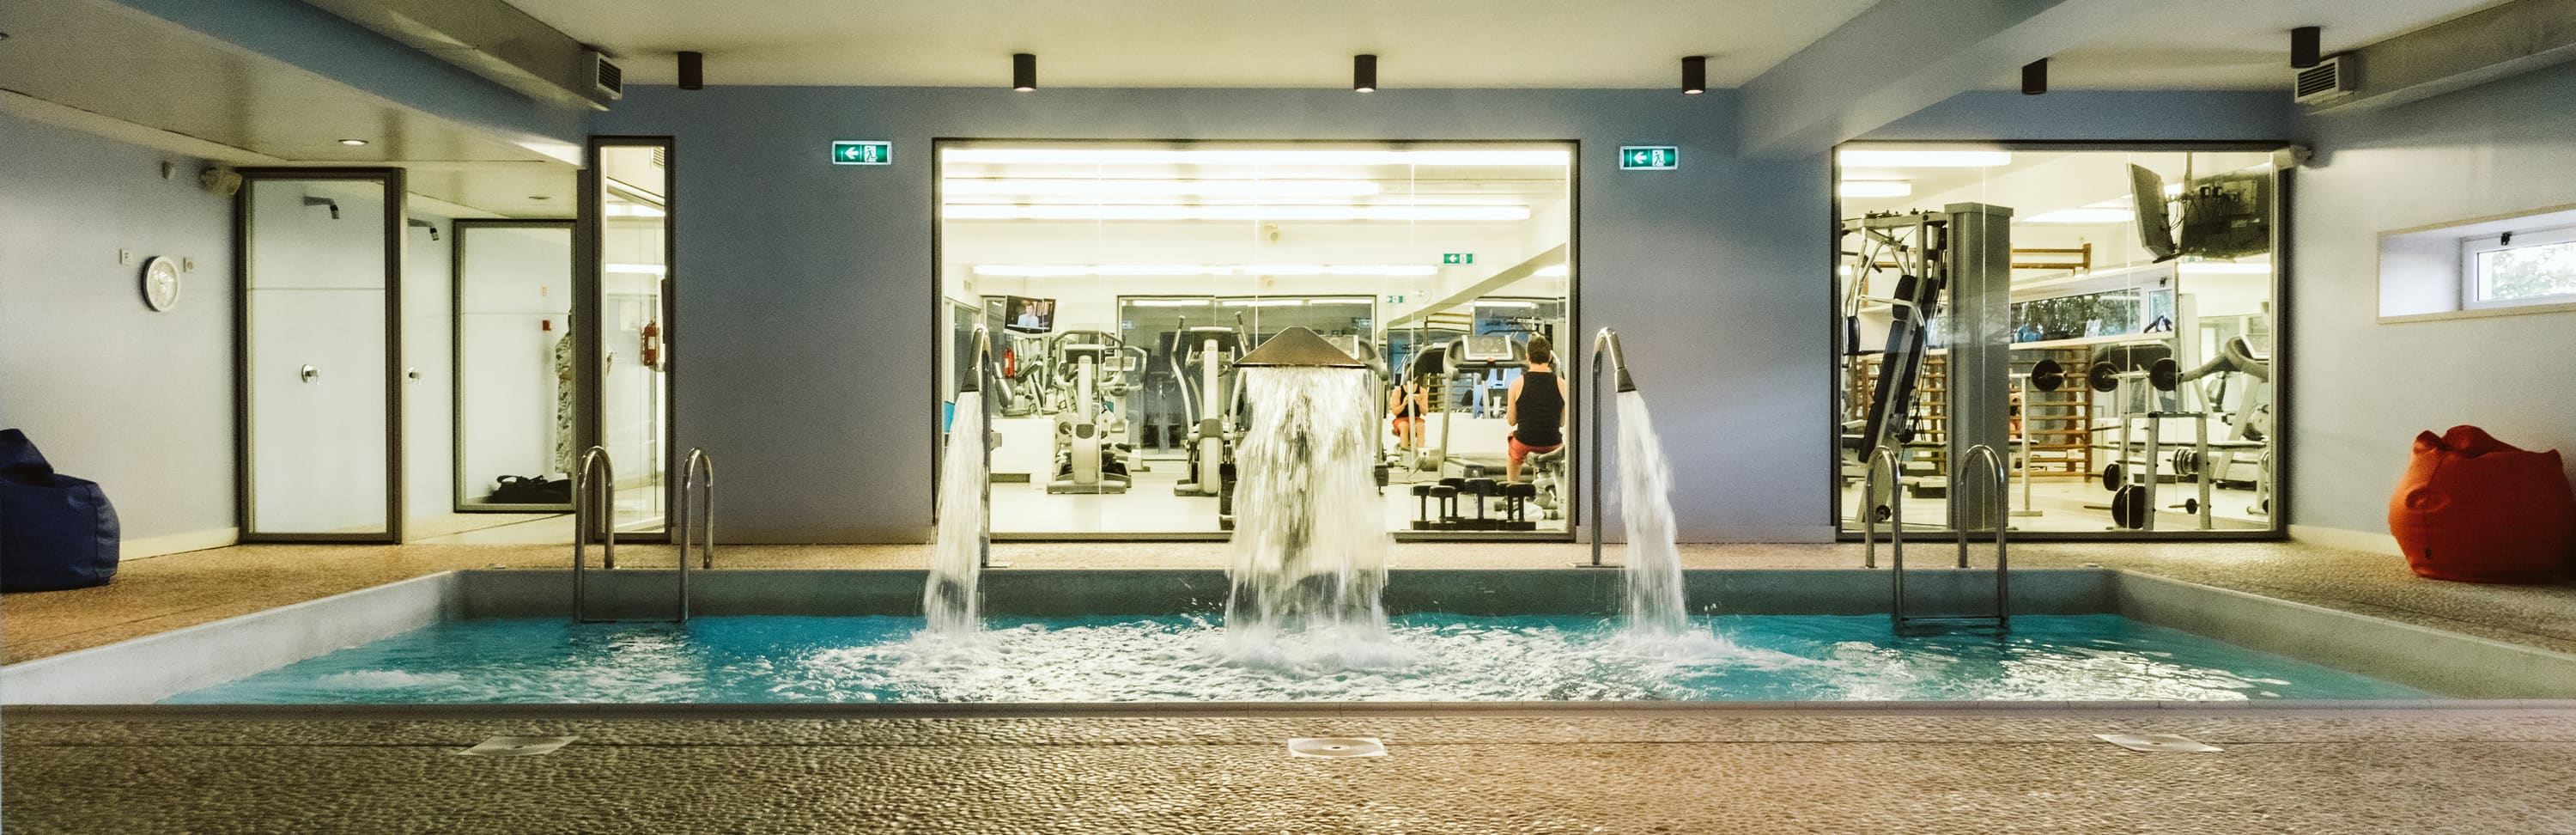 Gym, Spa & Indoor Swimming pool